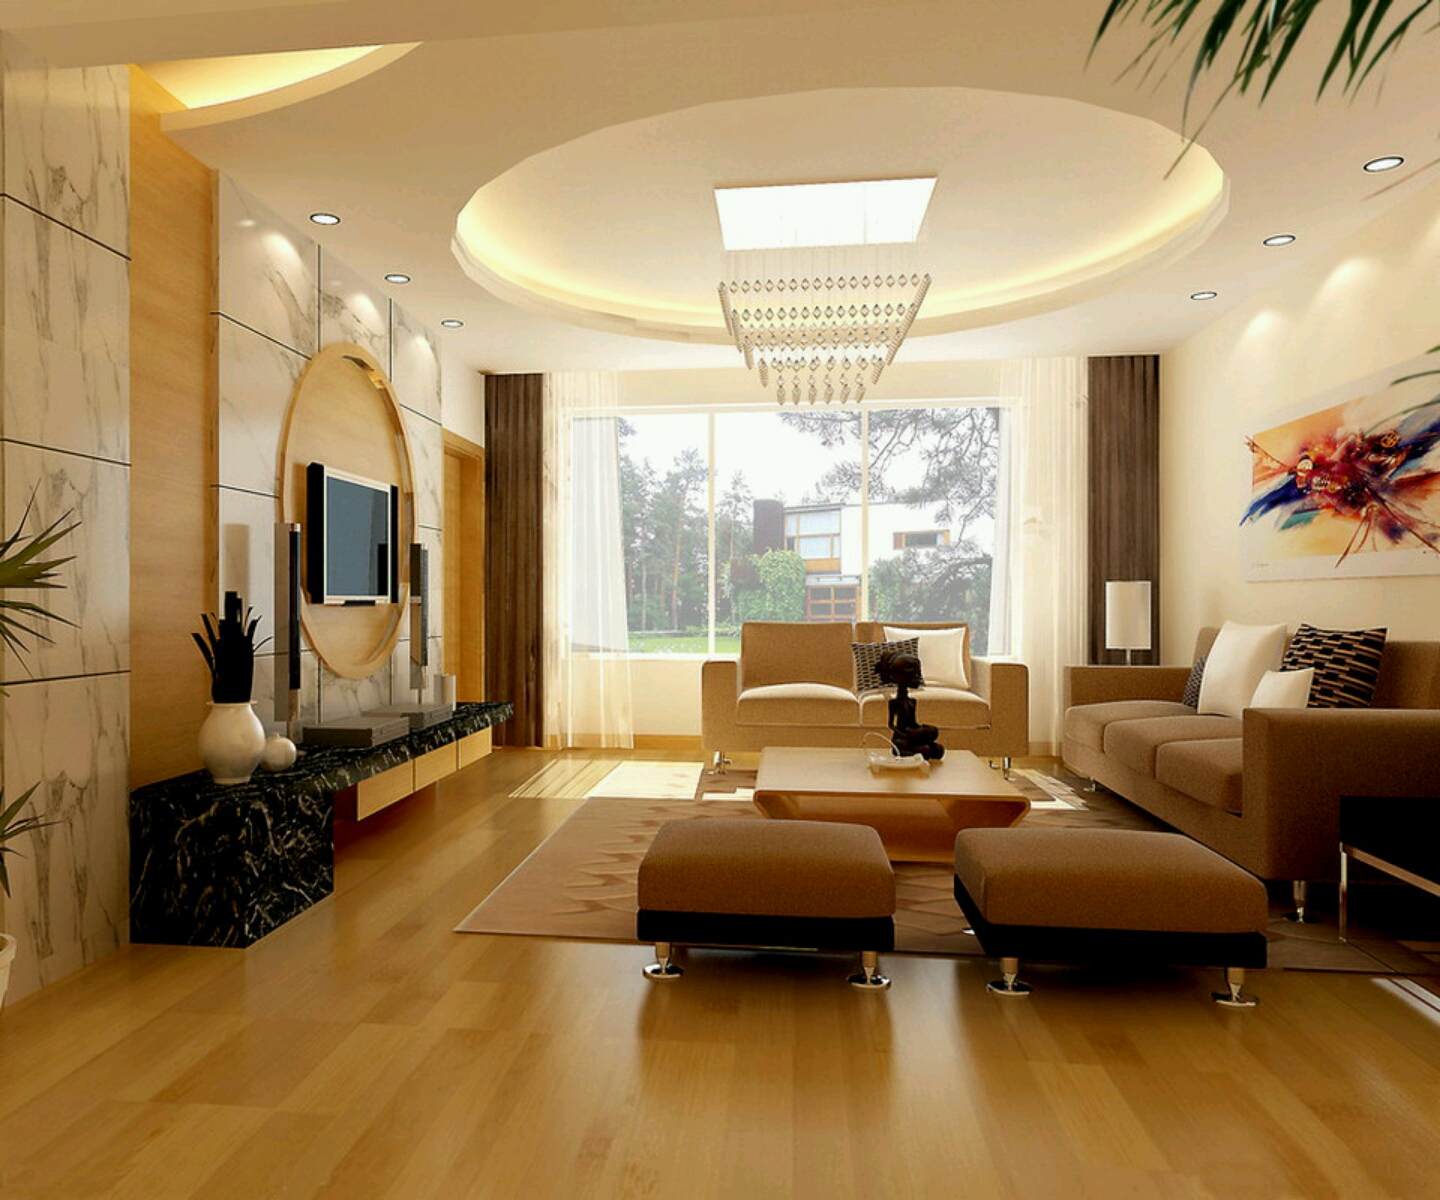 Modern interior decoration living rooms ceiling designs for Modern interior design ideas for living room 2015